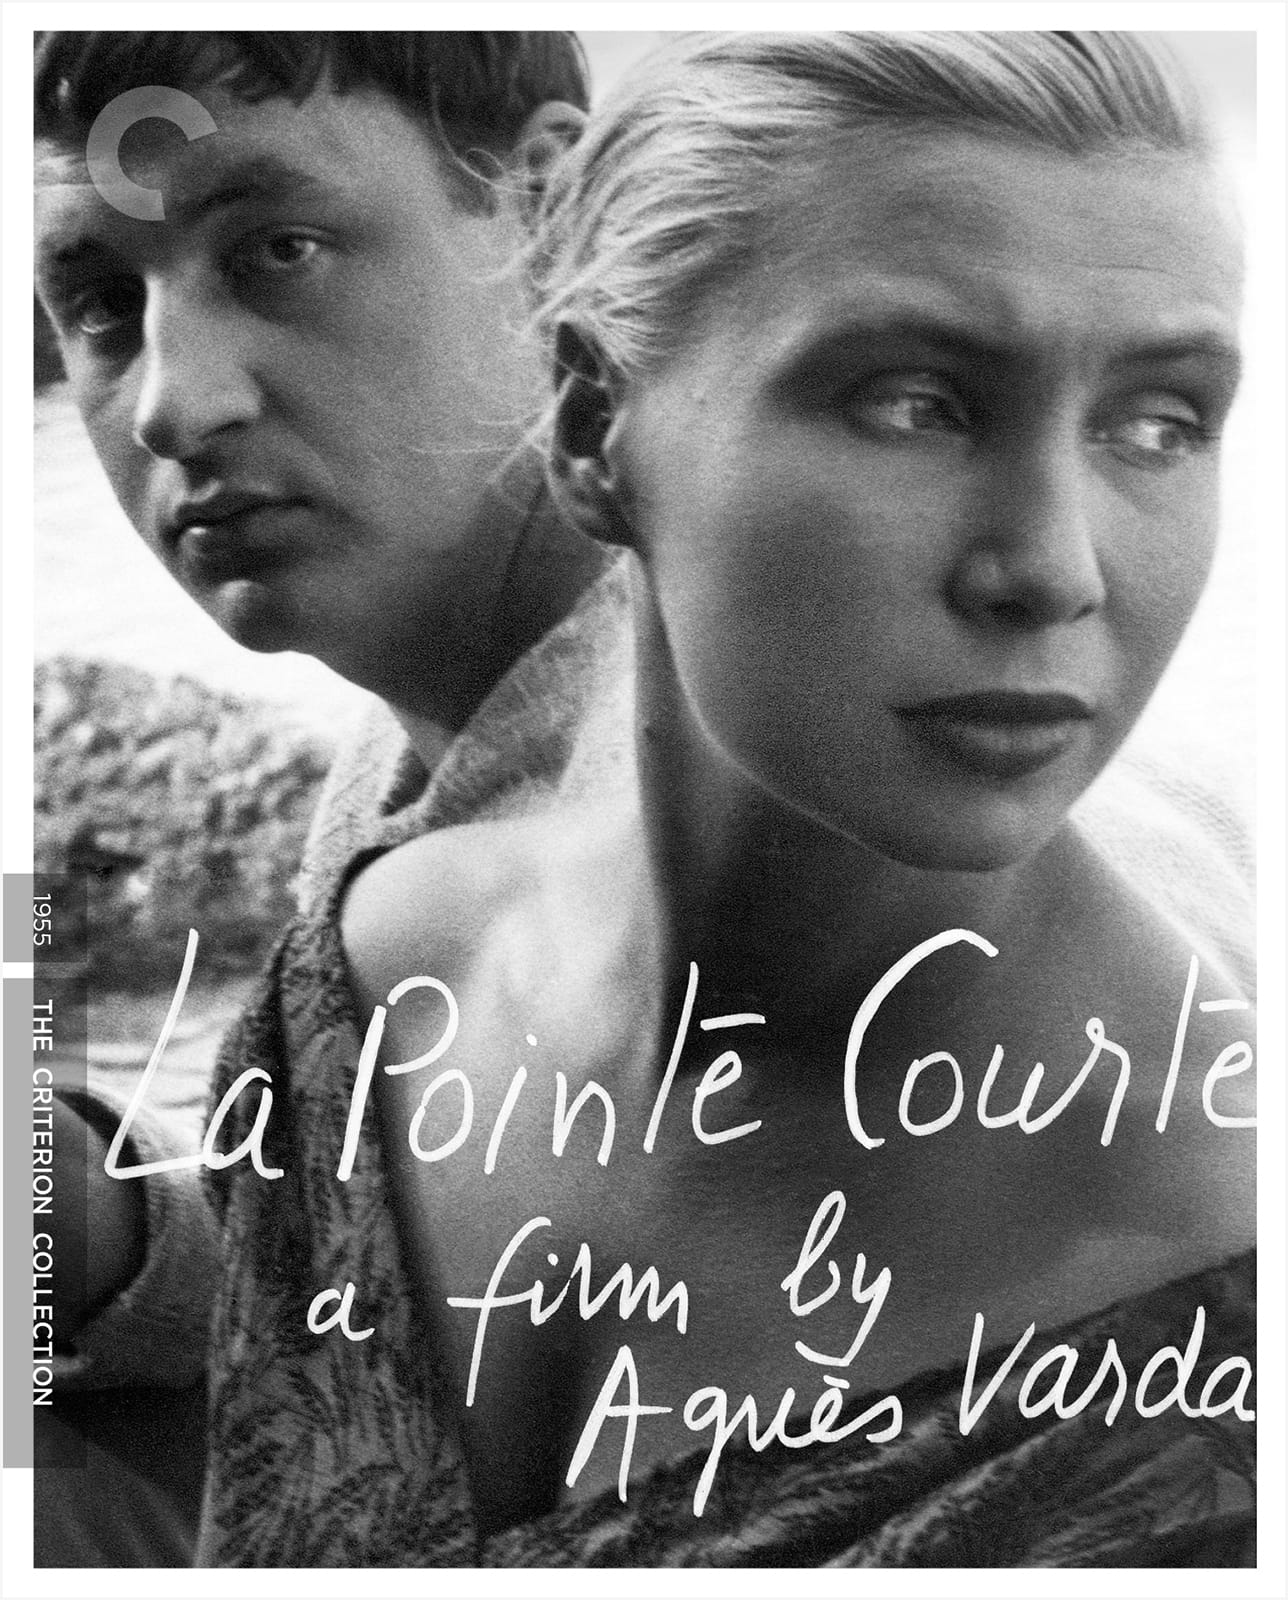 La Pointe Courte (1955) | The Criterion Collection